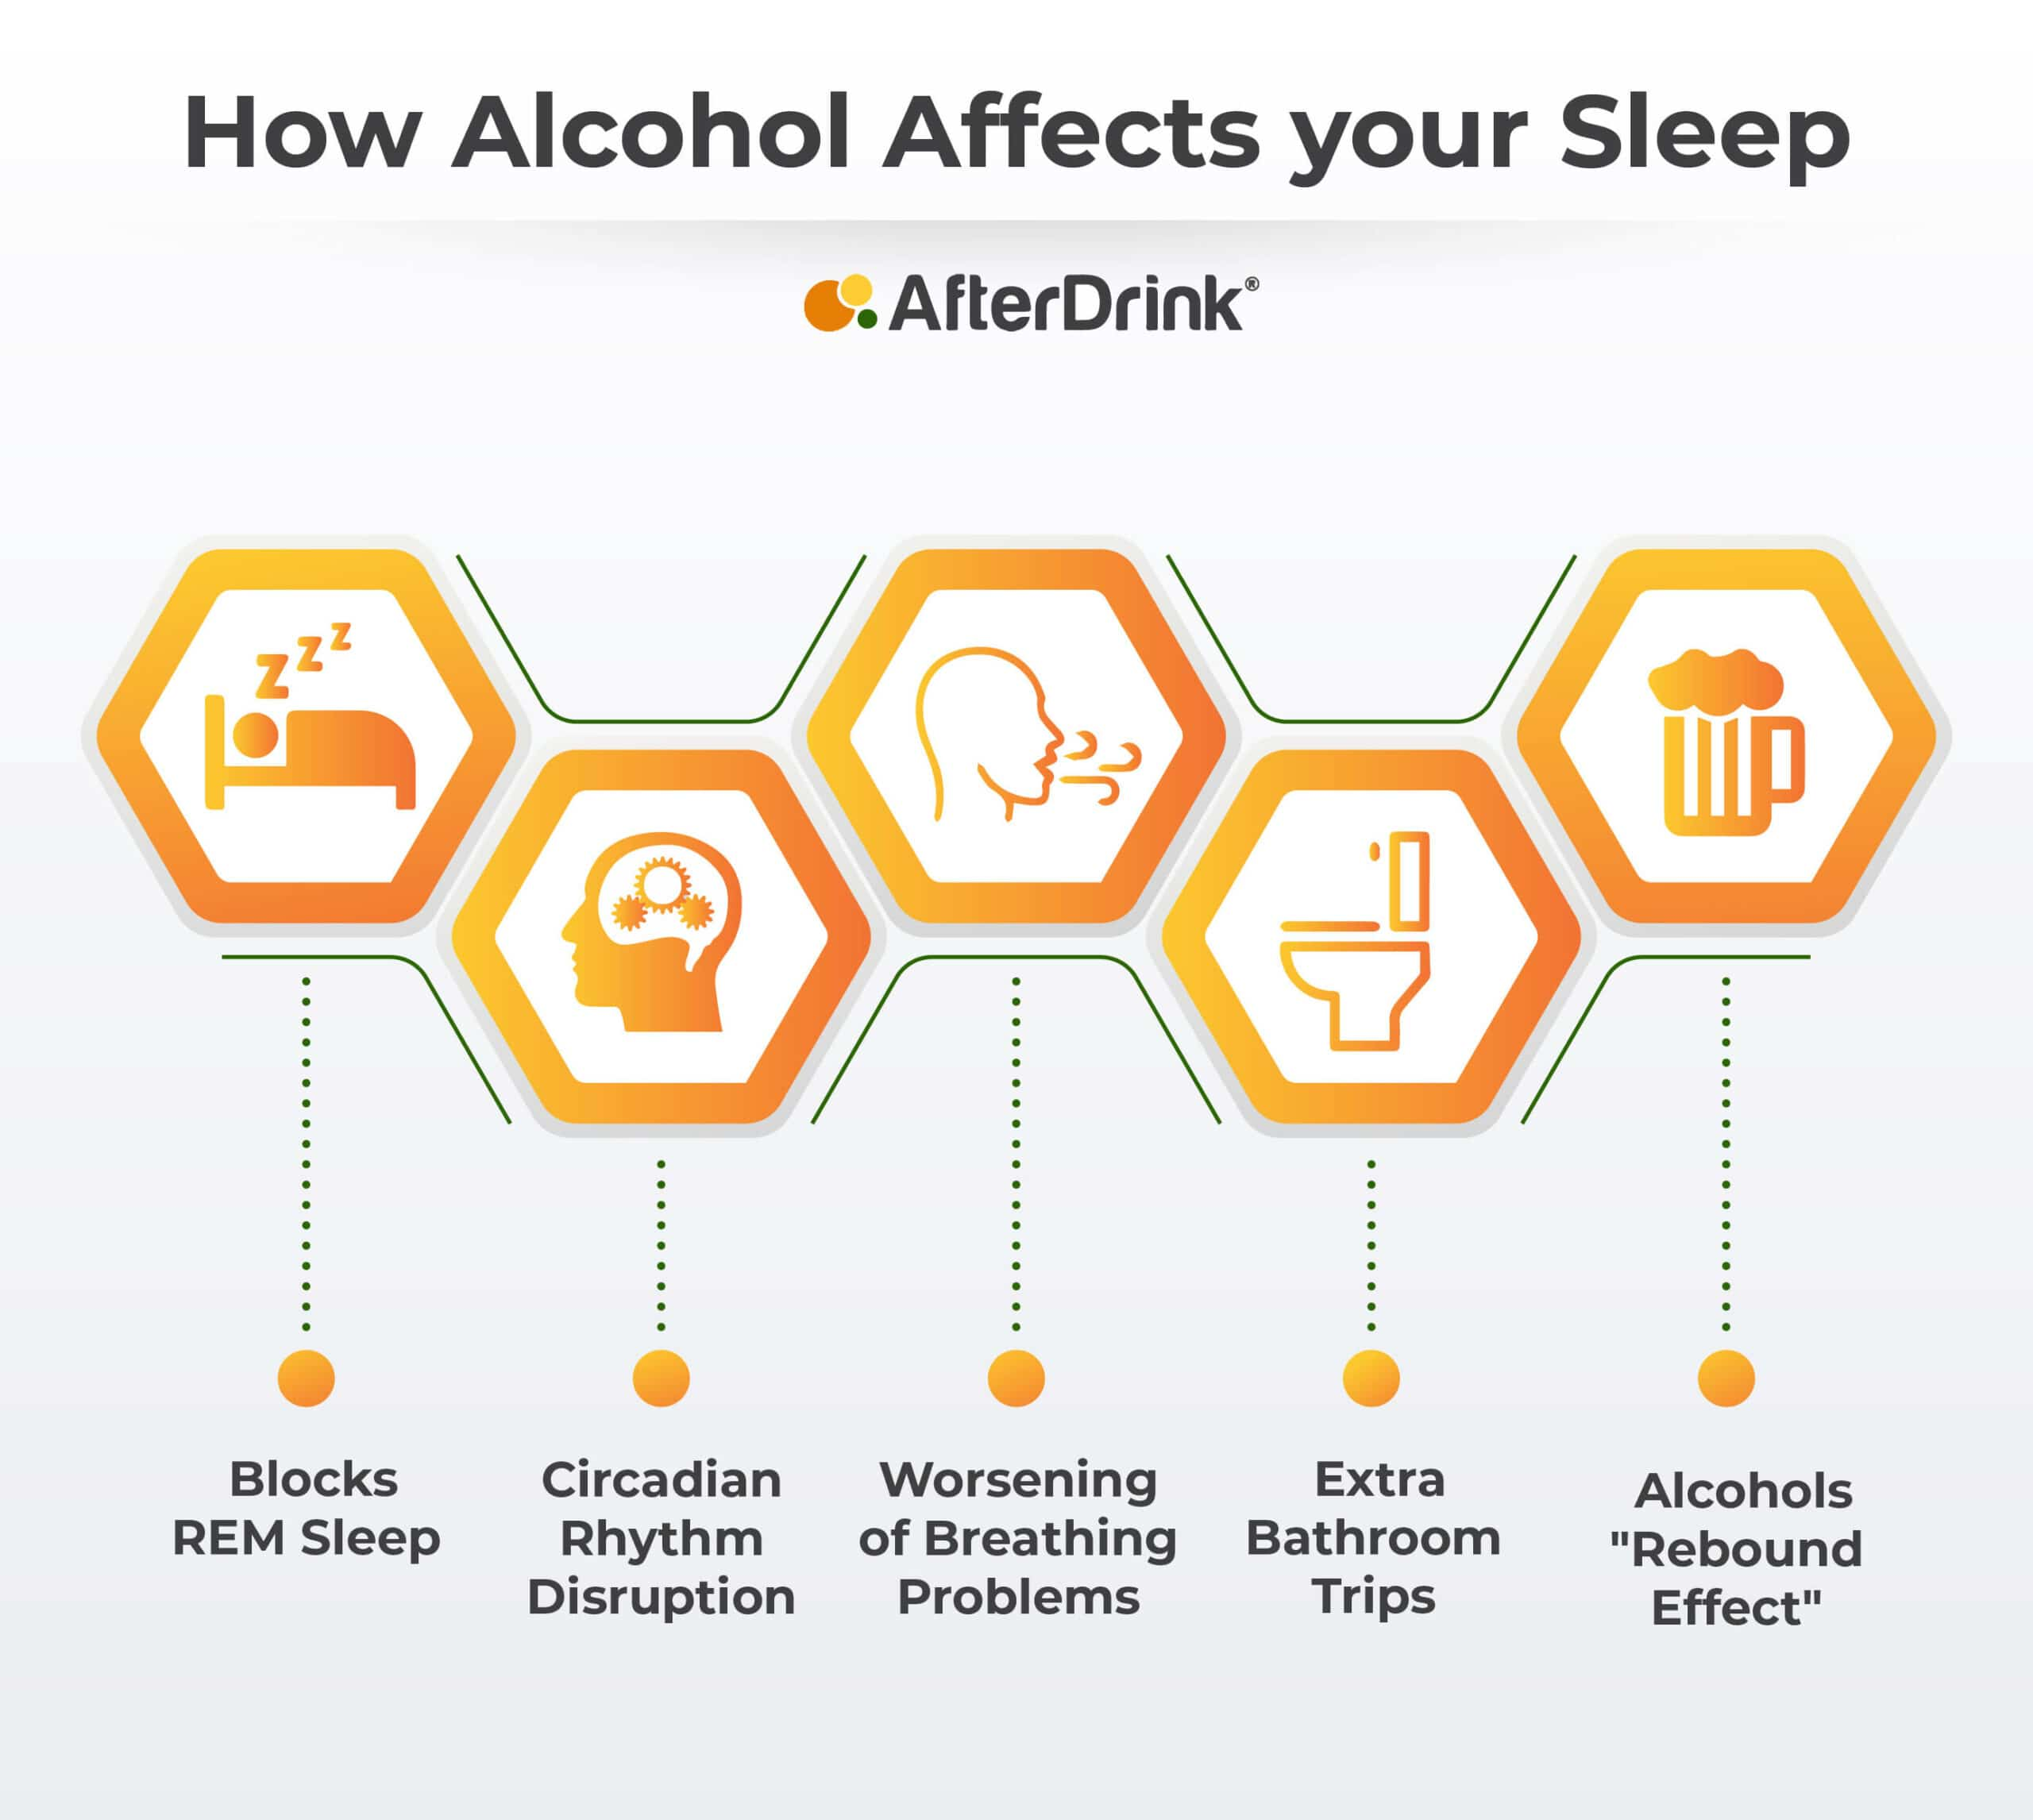 how alcohol affects sleep infographic